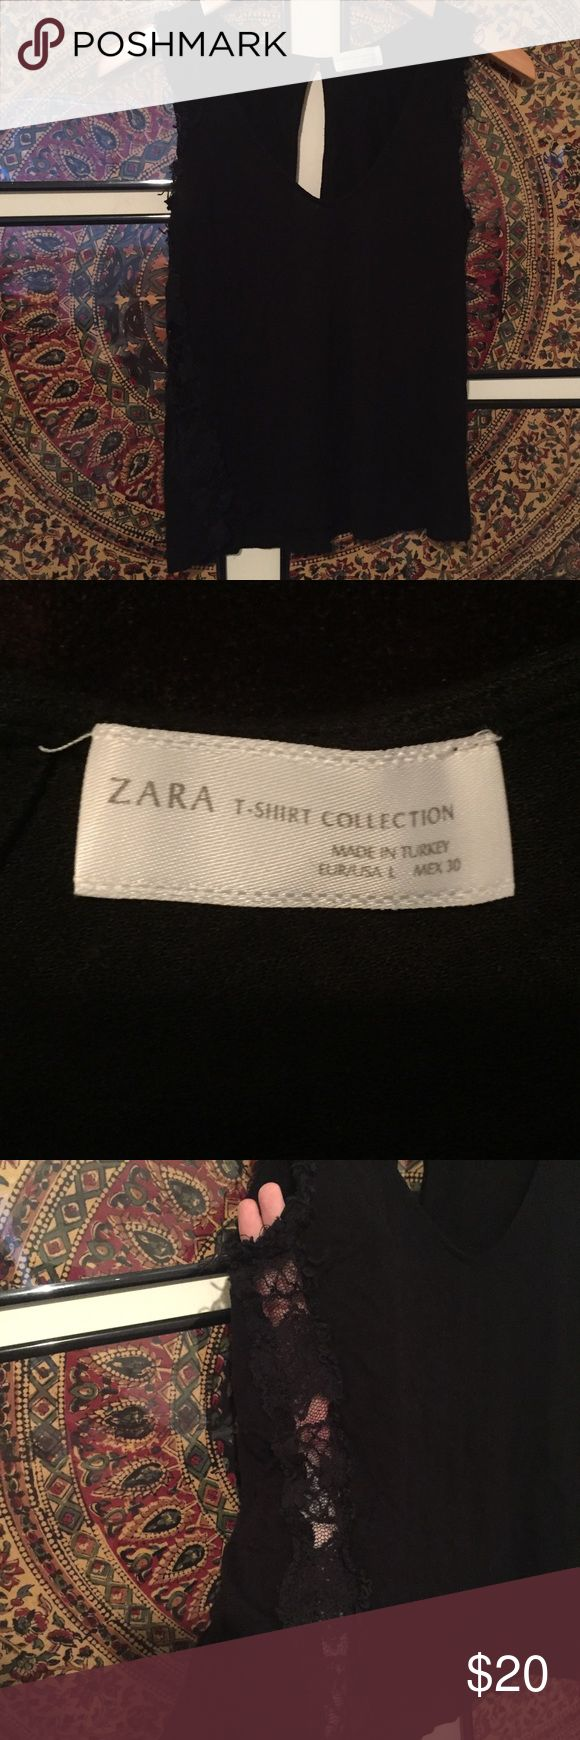 Zara Black Tank with Lace Sides Zara Tshirt Collection black tank with keyhole back, Lace sides, & trim around tank arm openings. Size large. Zara Tops Tank Tops